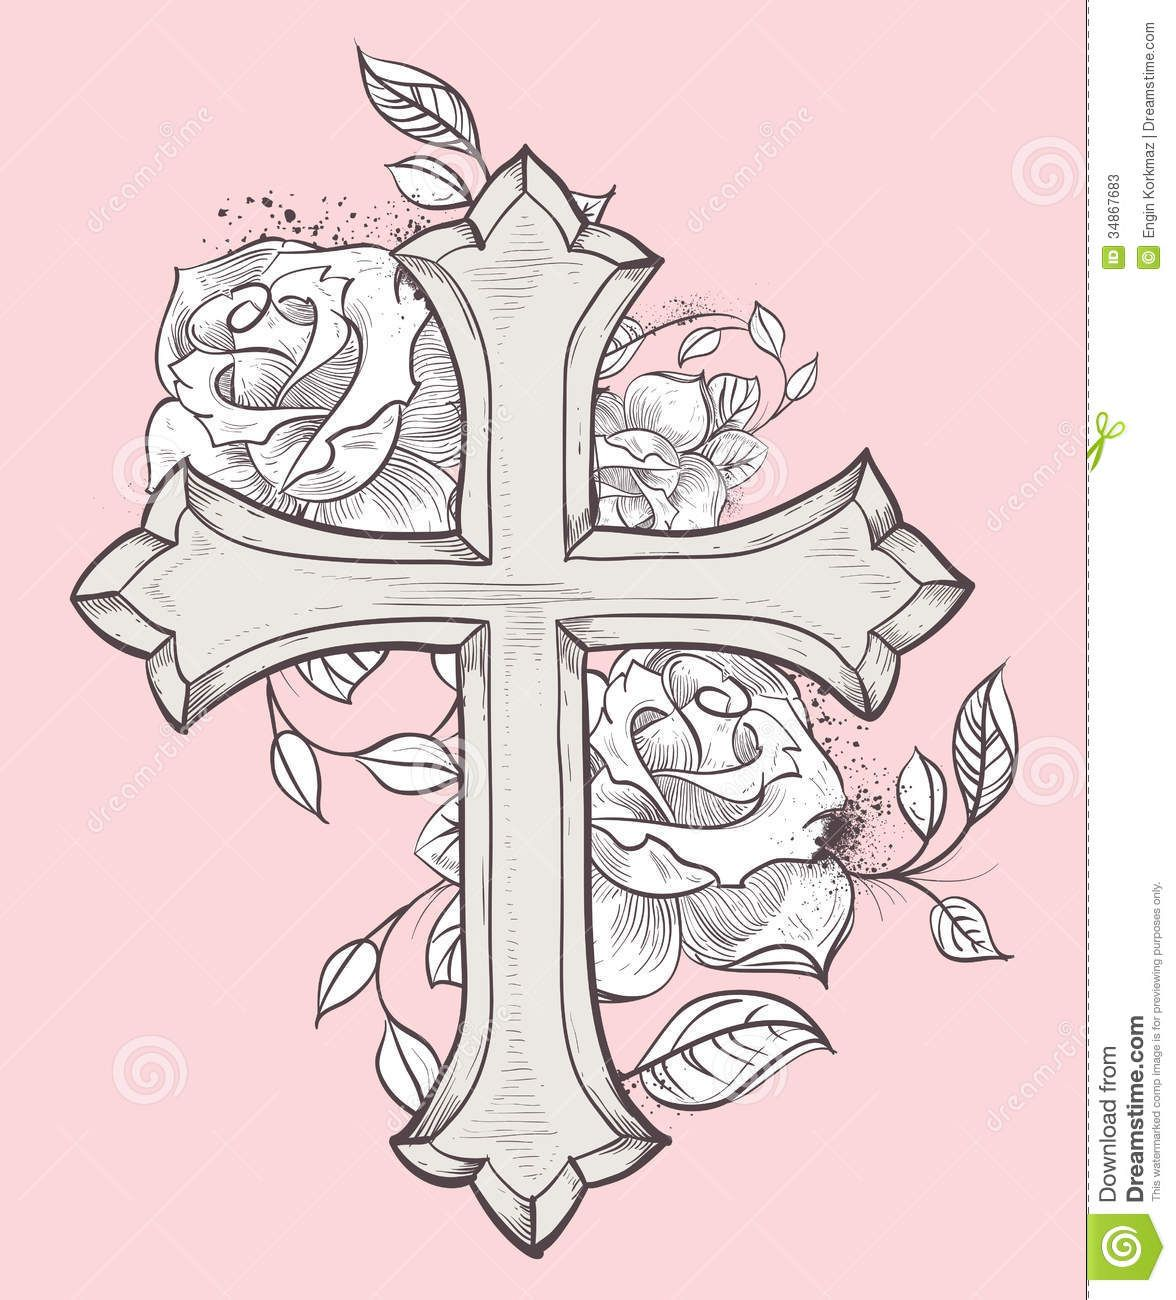 pix for gt cross with roses and banner tattos i